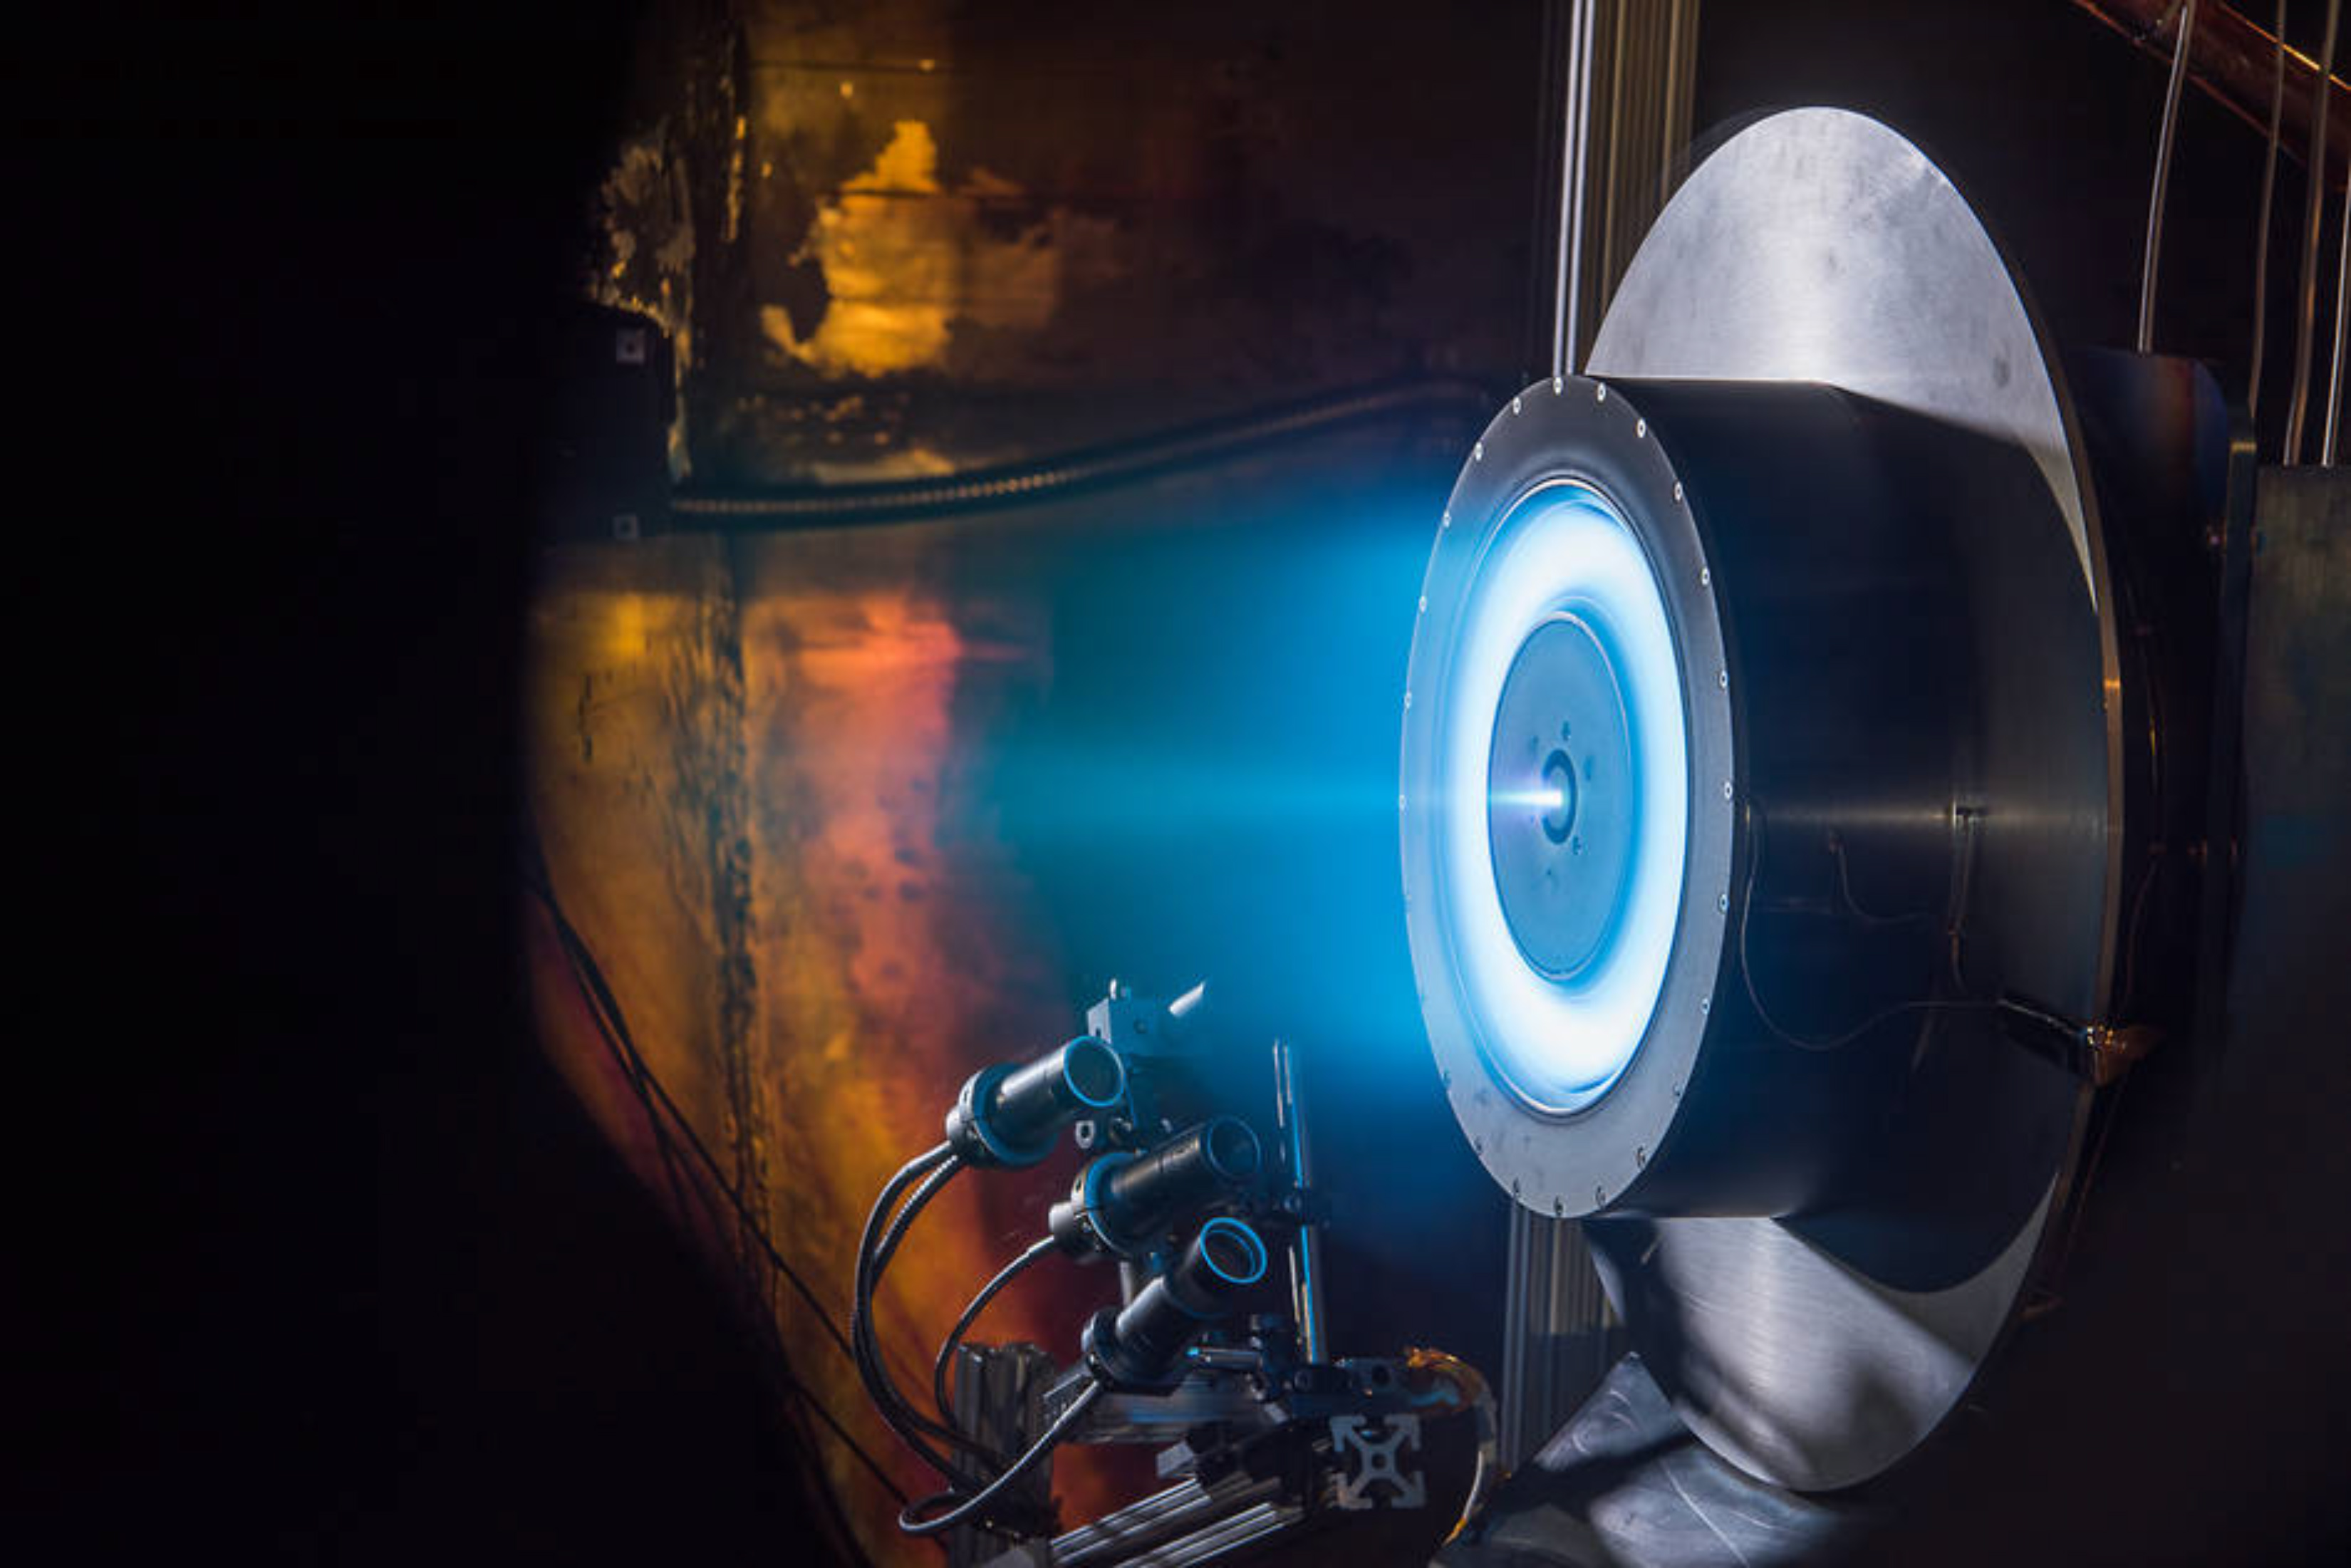 NASA is building a spacecraft designed to travel about 1.5 billion miles through our solar system — using propulsion that's almost entirely solar